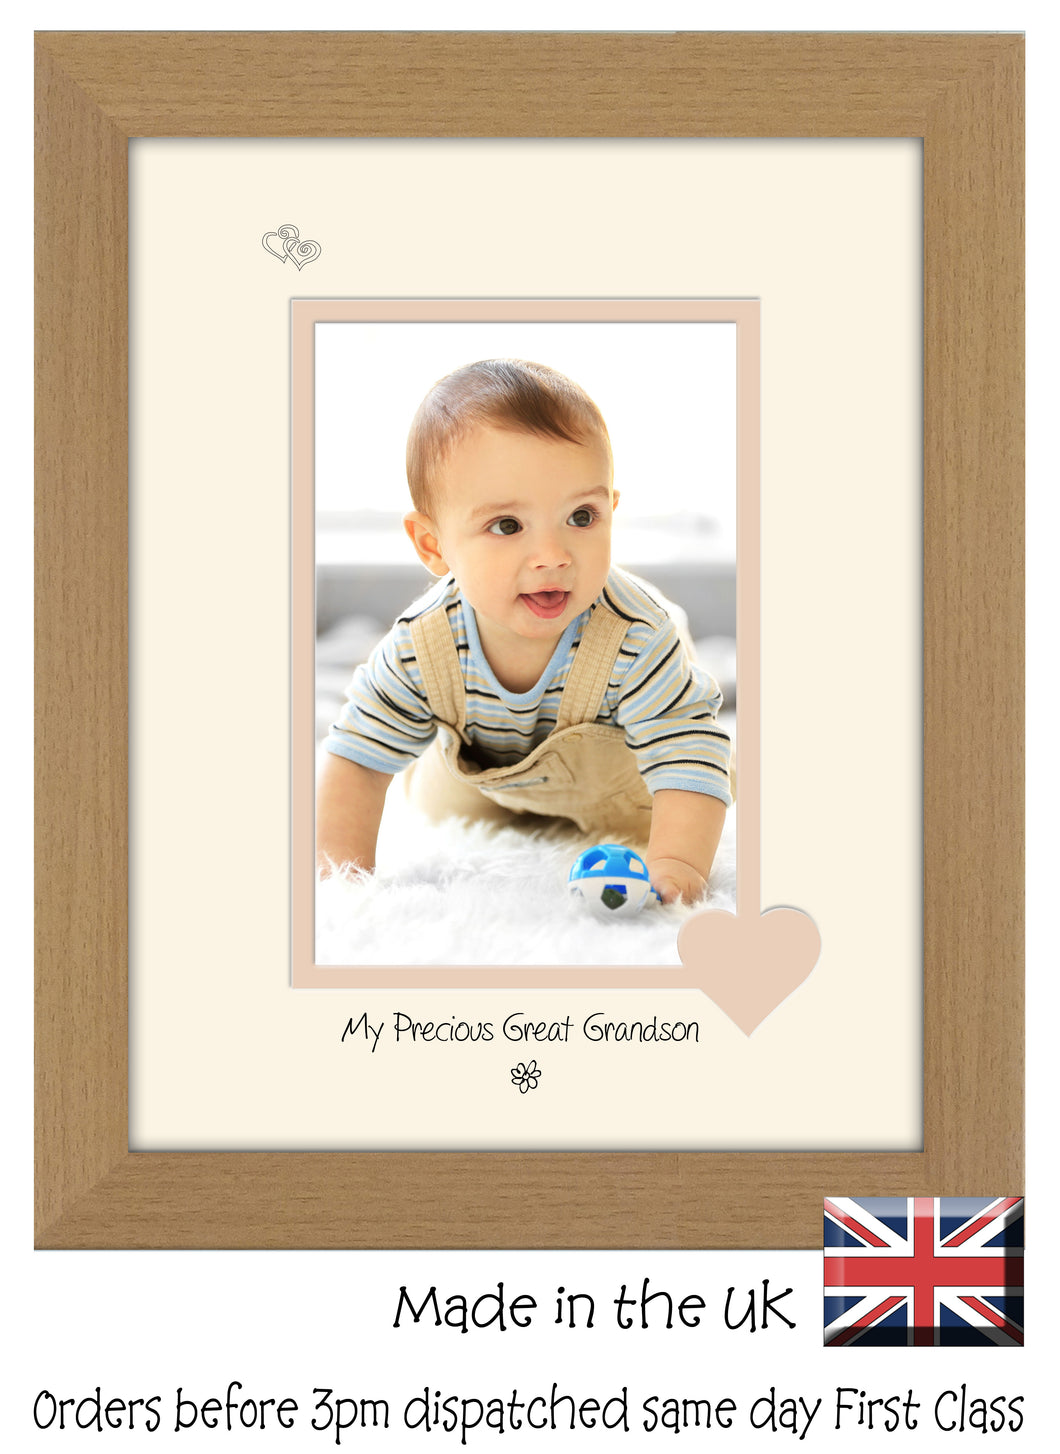 Great Grandson Photo Frame - My precious Great Grandson Portrait photo frame 6